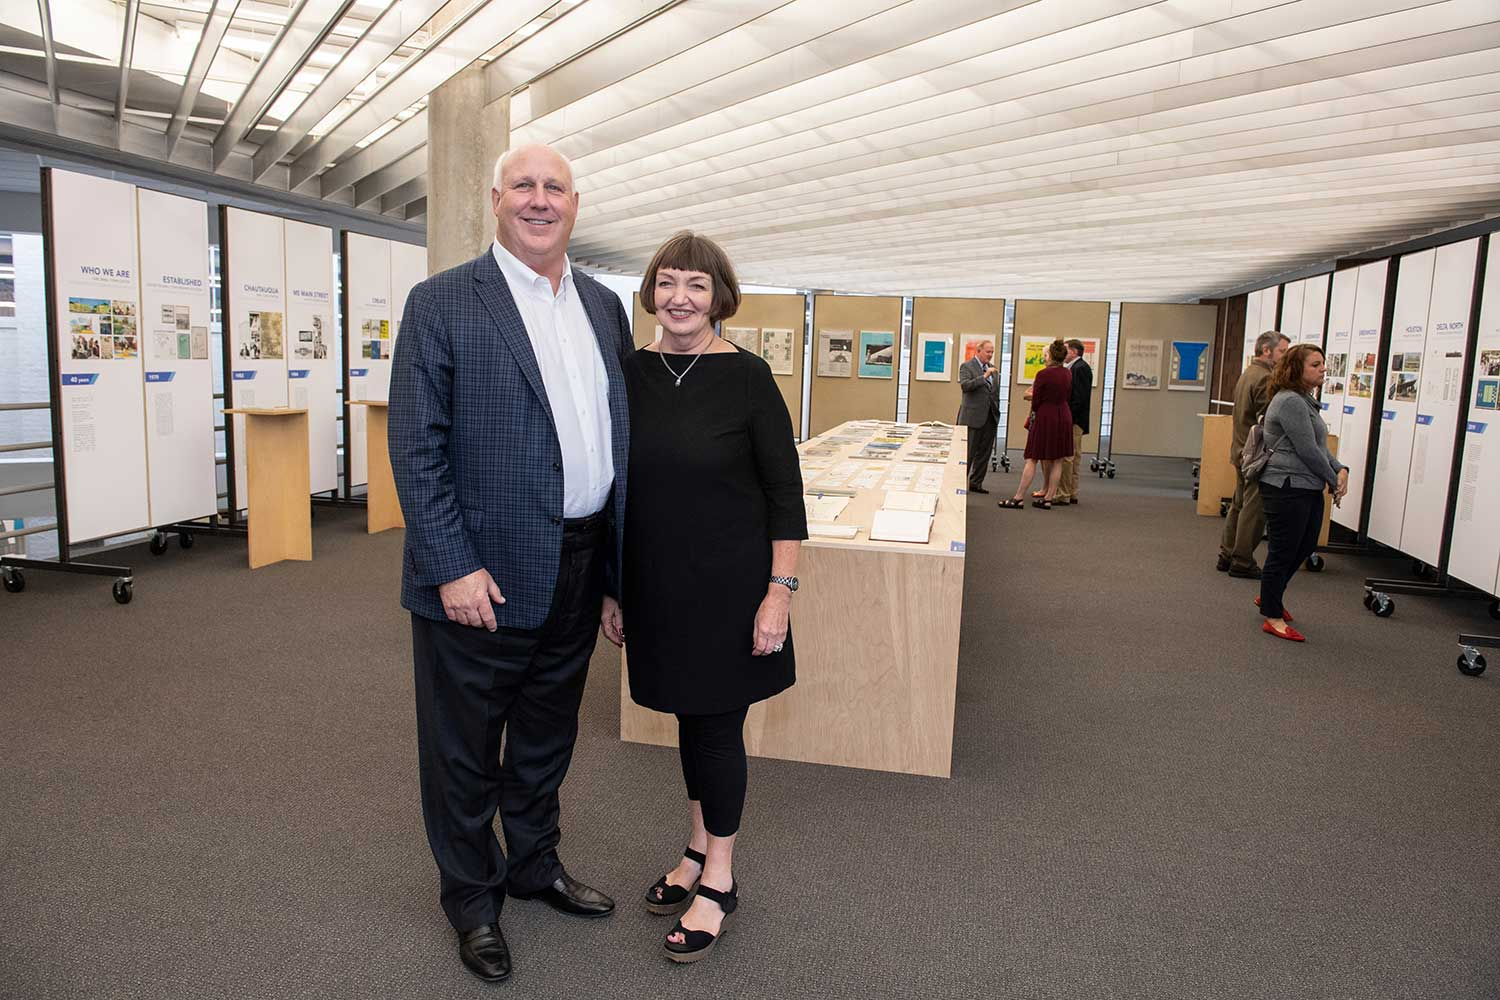 pictured inside of gallery in Giles Hall, left to right, Richard McNeel and Charlotte McNeel